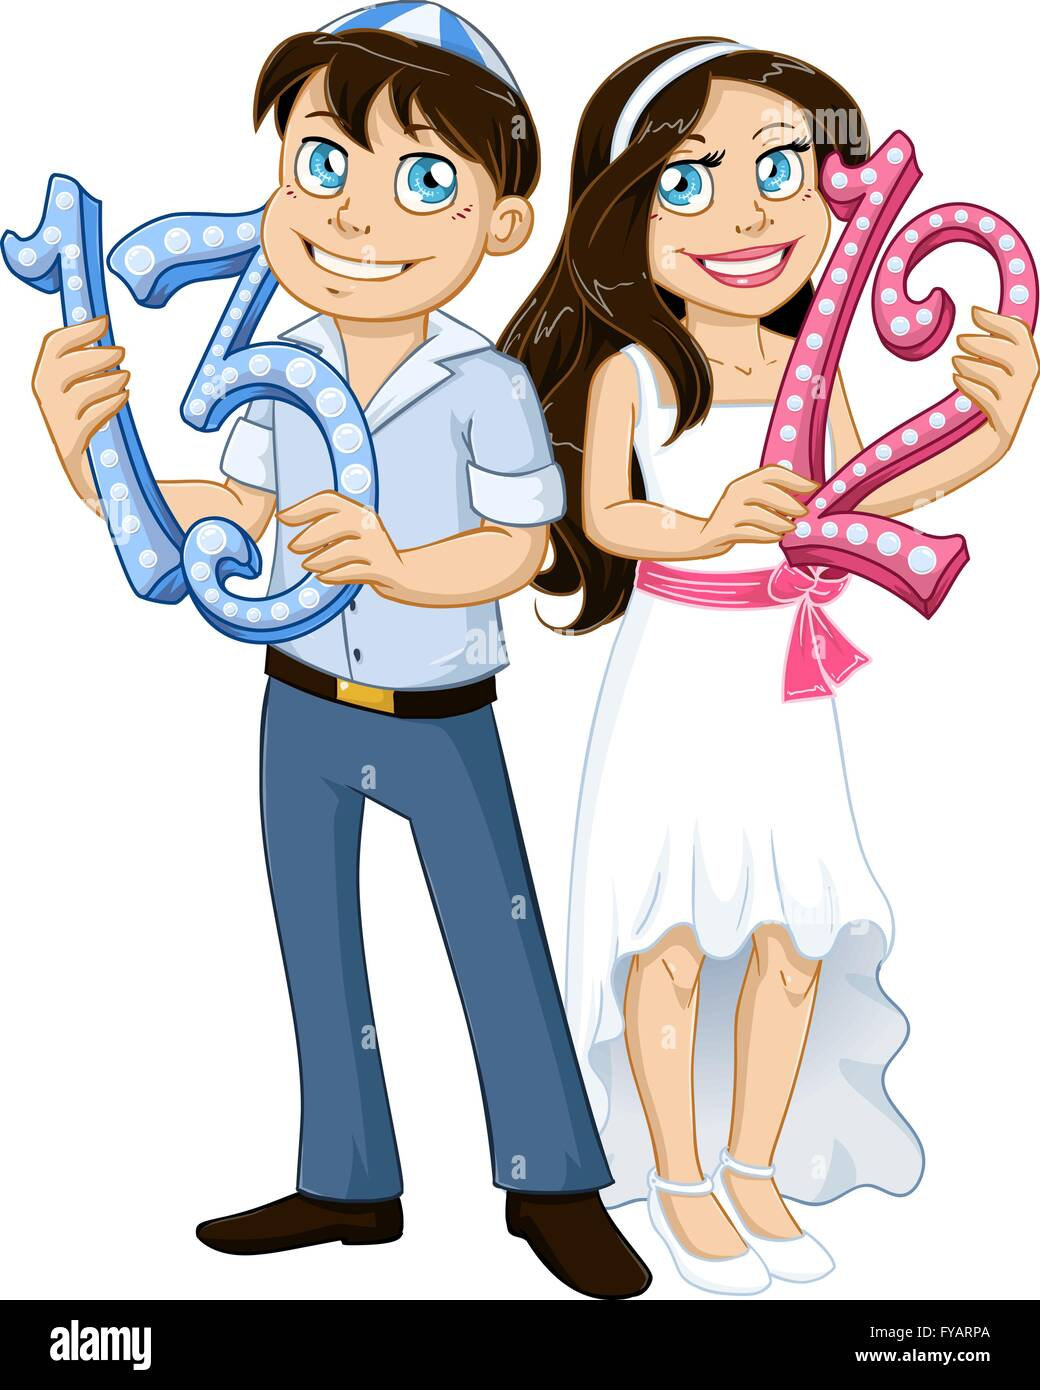 Vector illustration of jewish boy and girl holding the numbers 13 vector illustration of jewish boy and girl holding the numbers 13 and 12 for bar and bat mitzvah biocorpaavc Gallery